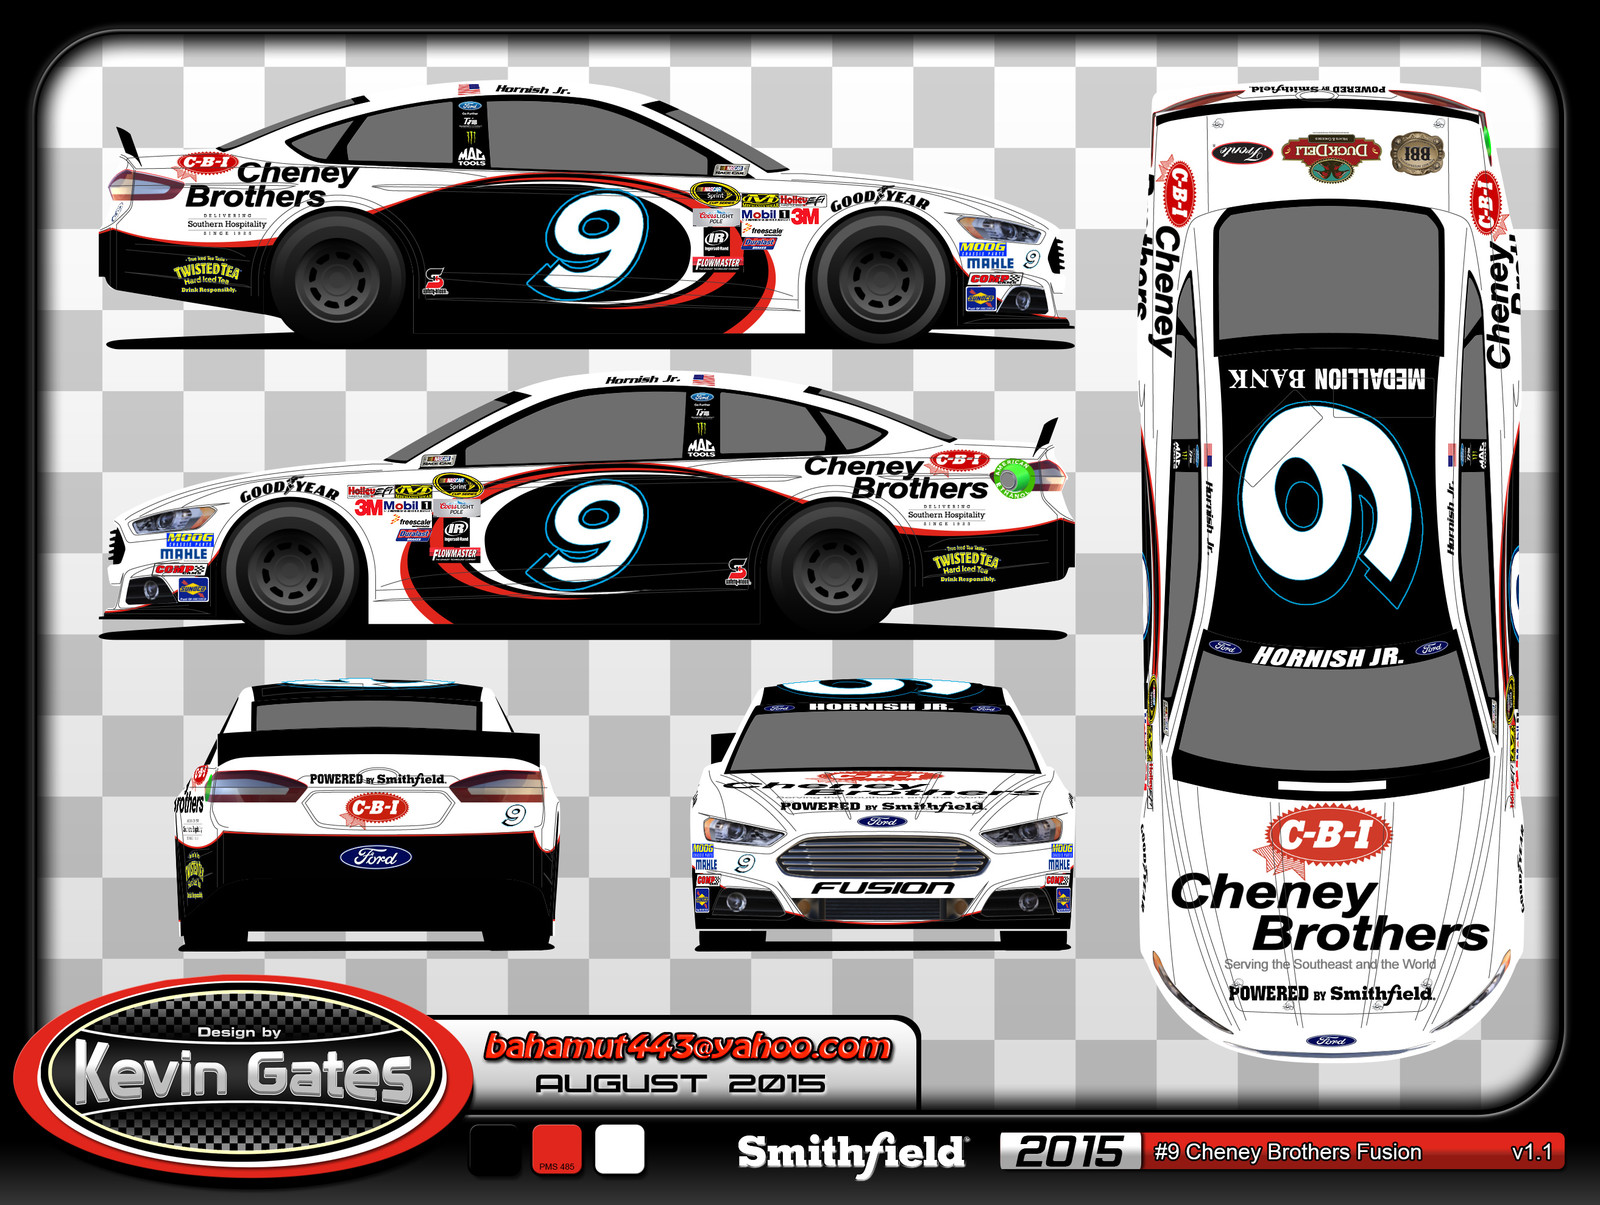 Original vector art of the 2015 #9 Cheney Brothers Ford Fusion